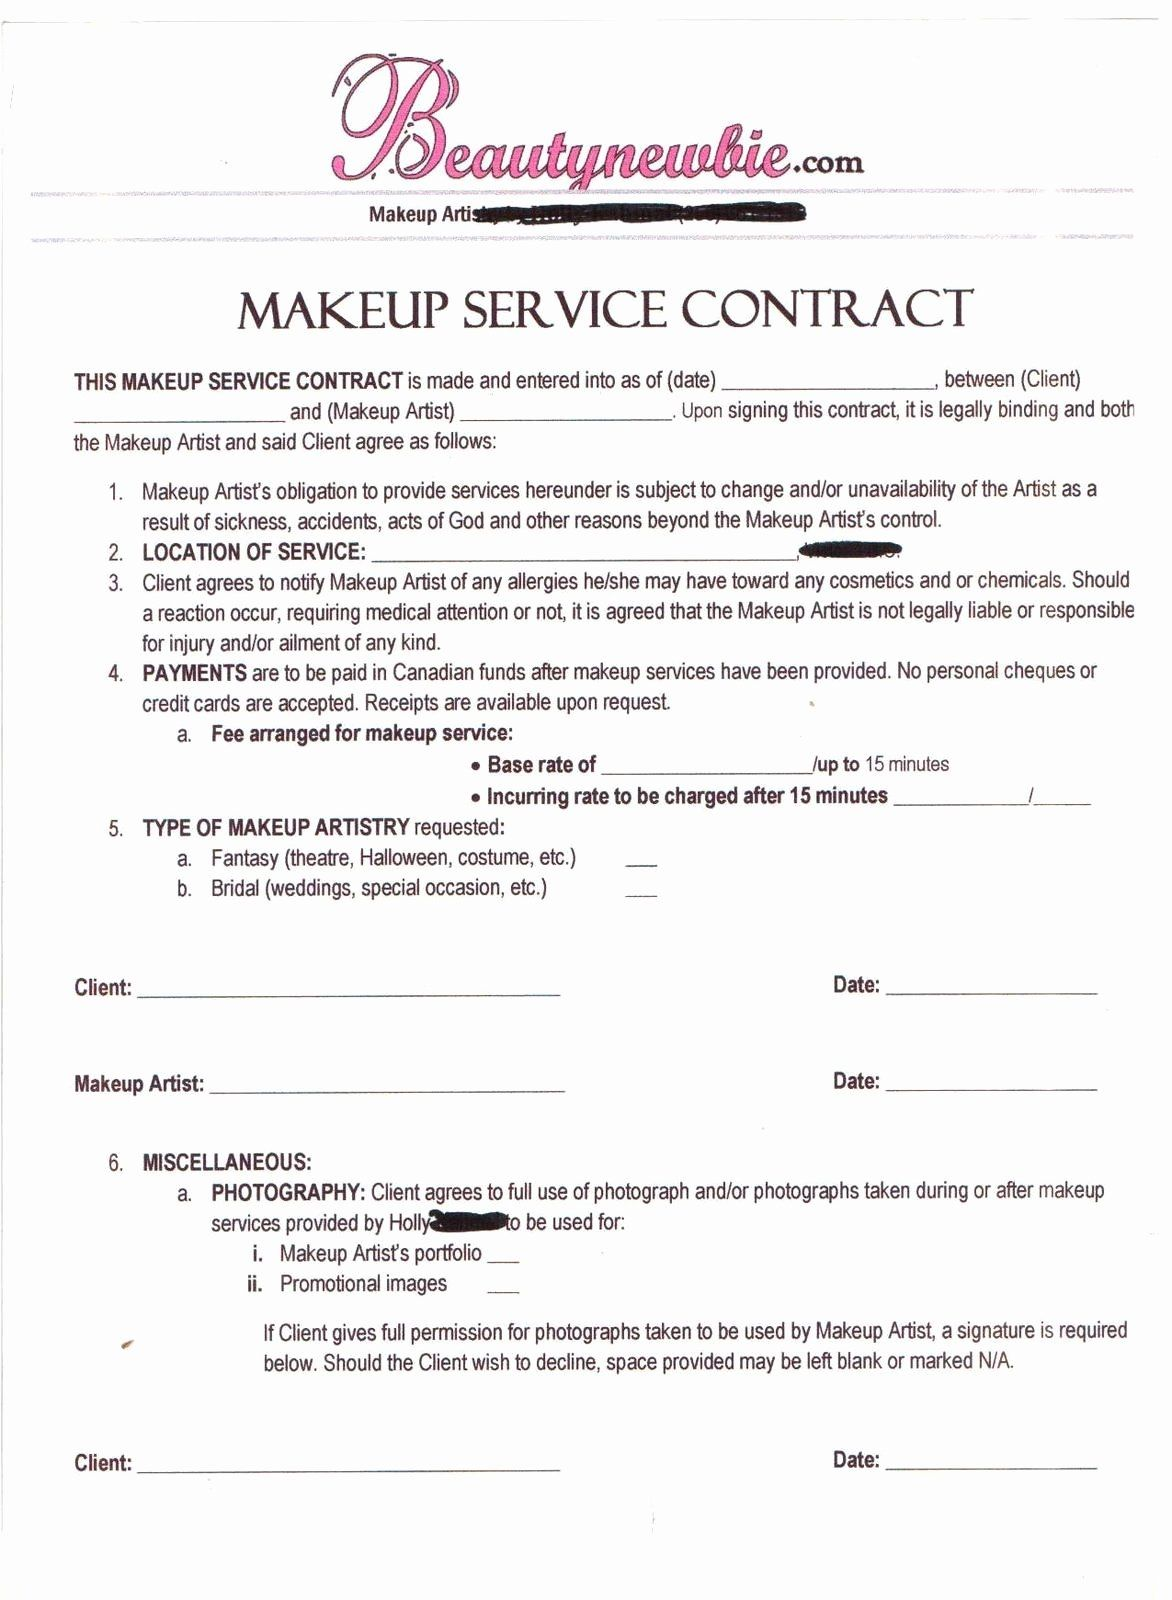 Hair Stylist Contract For Wedding Awesome Contract Makeup Artist Makeup Artist Kit Essentials Makeup Artist Tips Makeup Artist Kit